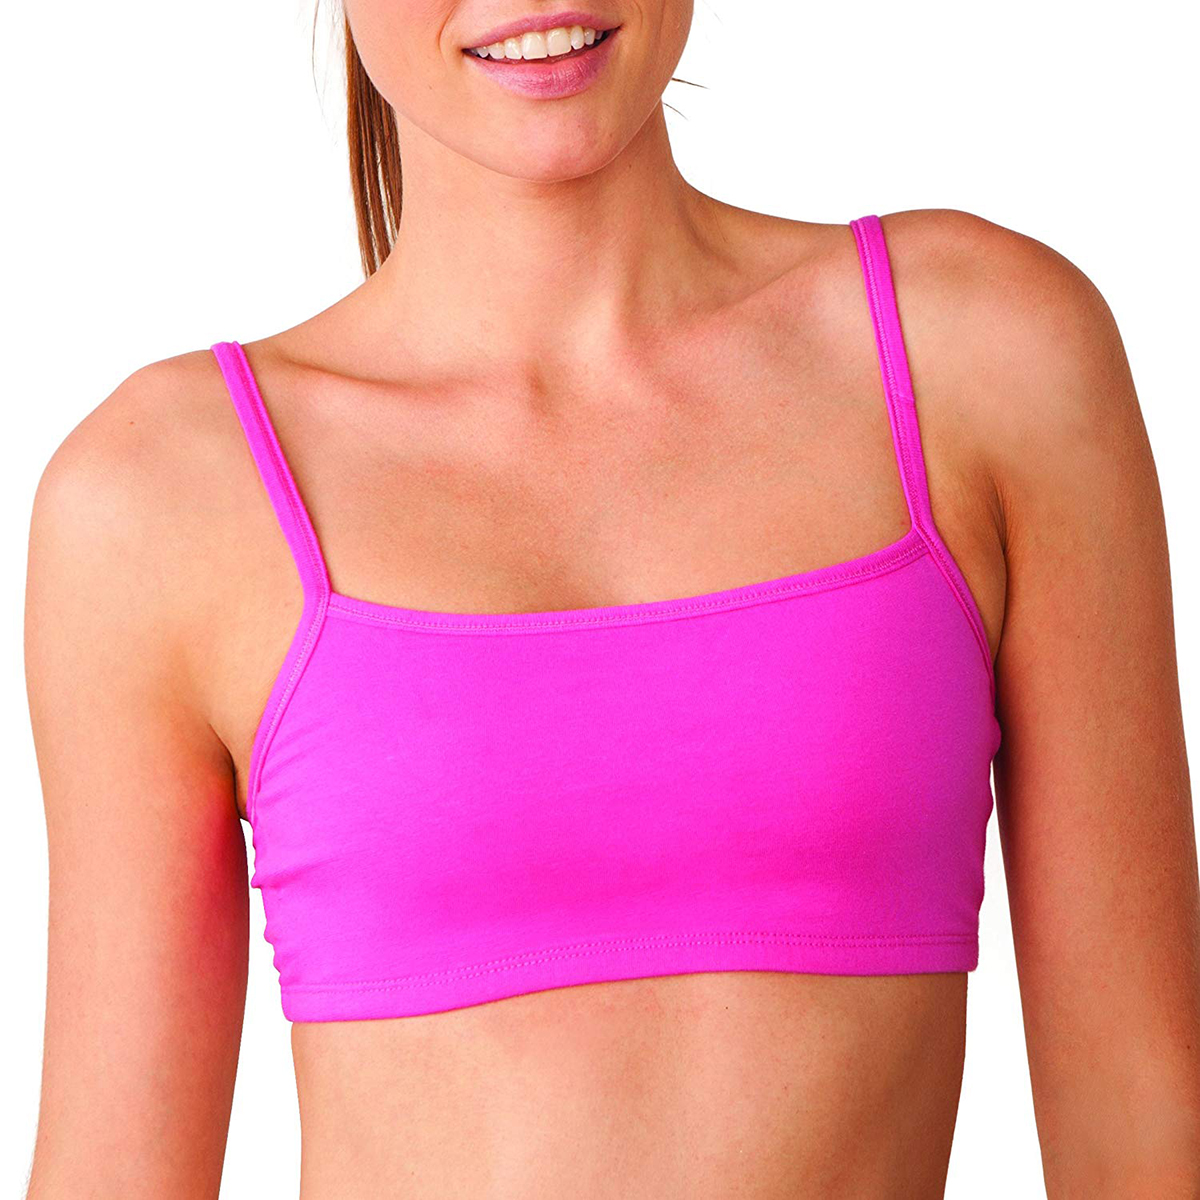 Fruit of the Loom Pullover Bra